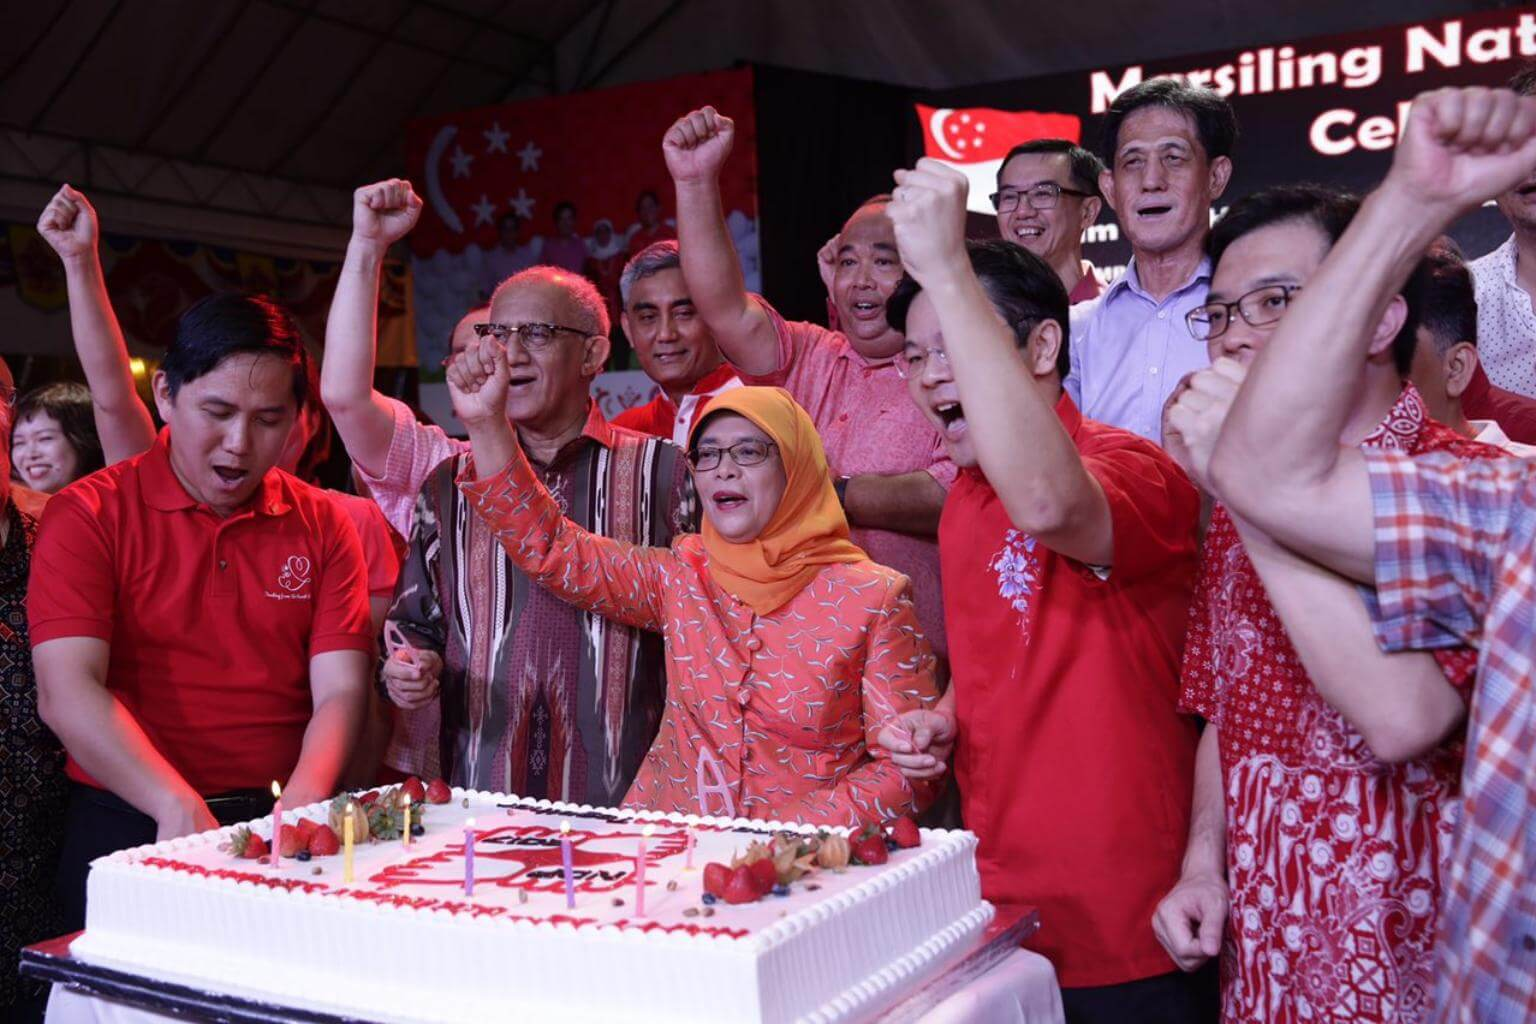 We Asked Marsiling About the By-election. Here's What They Said.